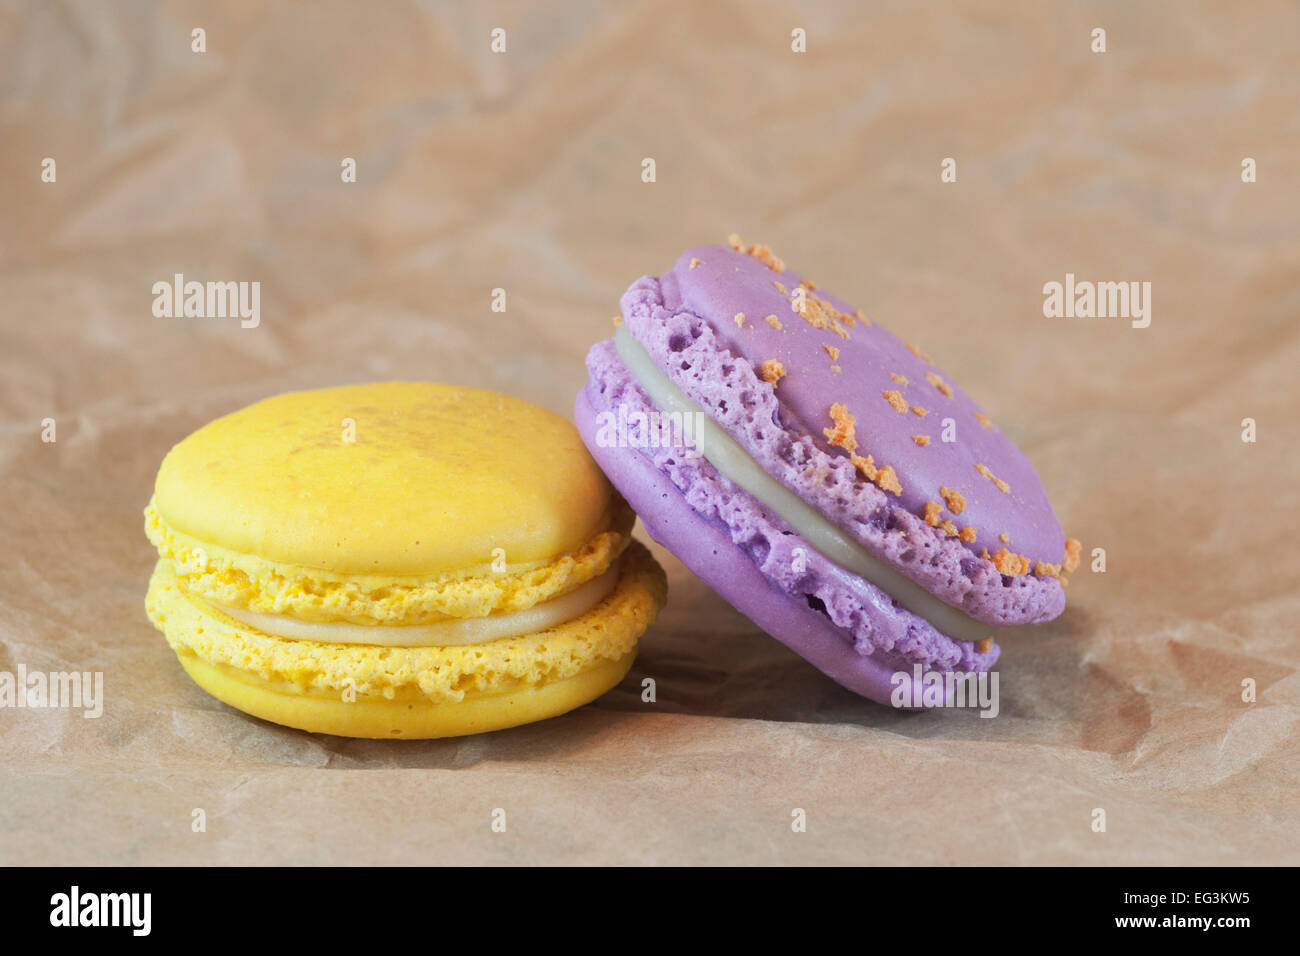 Macarons: lemon and lavender with apricot flavored - Stock Image